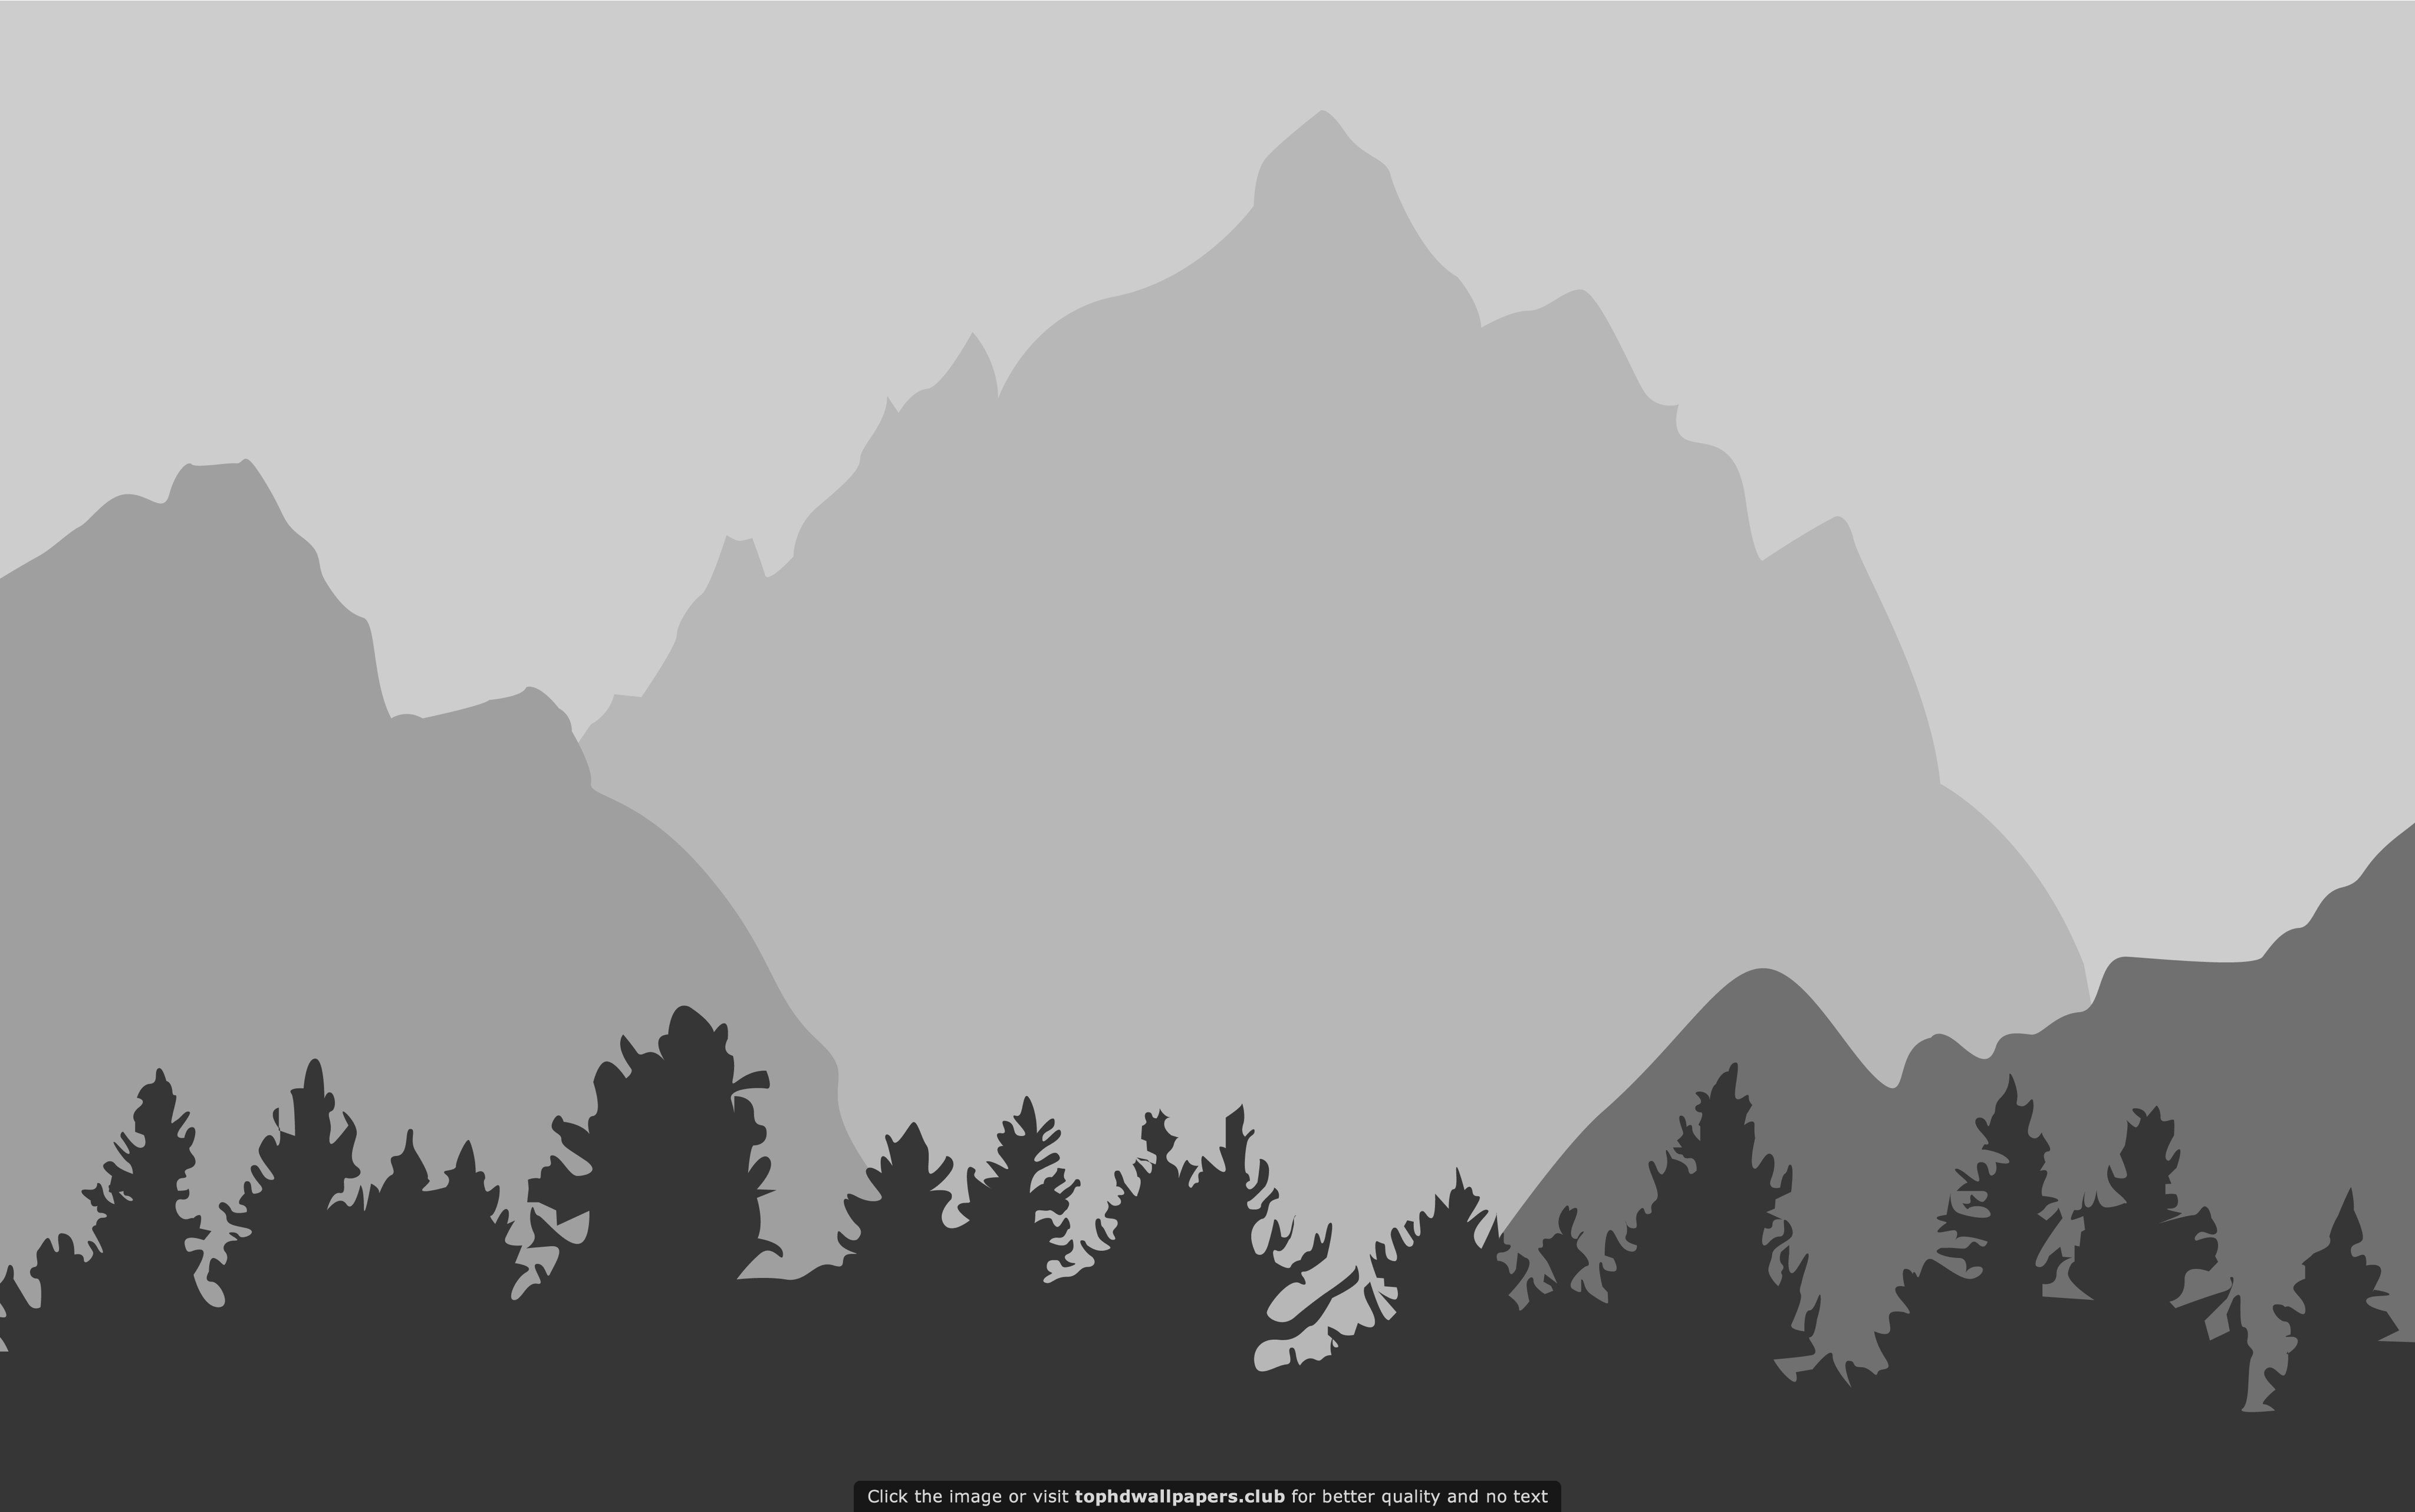 This Minimalistic Landscape 4k Wallpaper Minimalist Desktop Wallpaper Minimalist Wallpaper Landscape Wallpaper